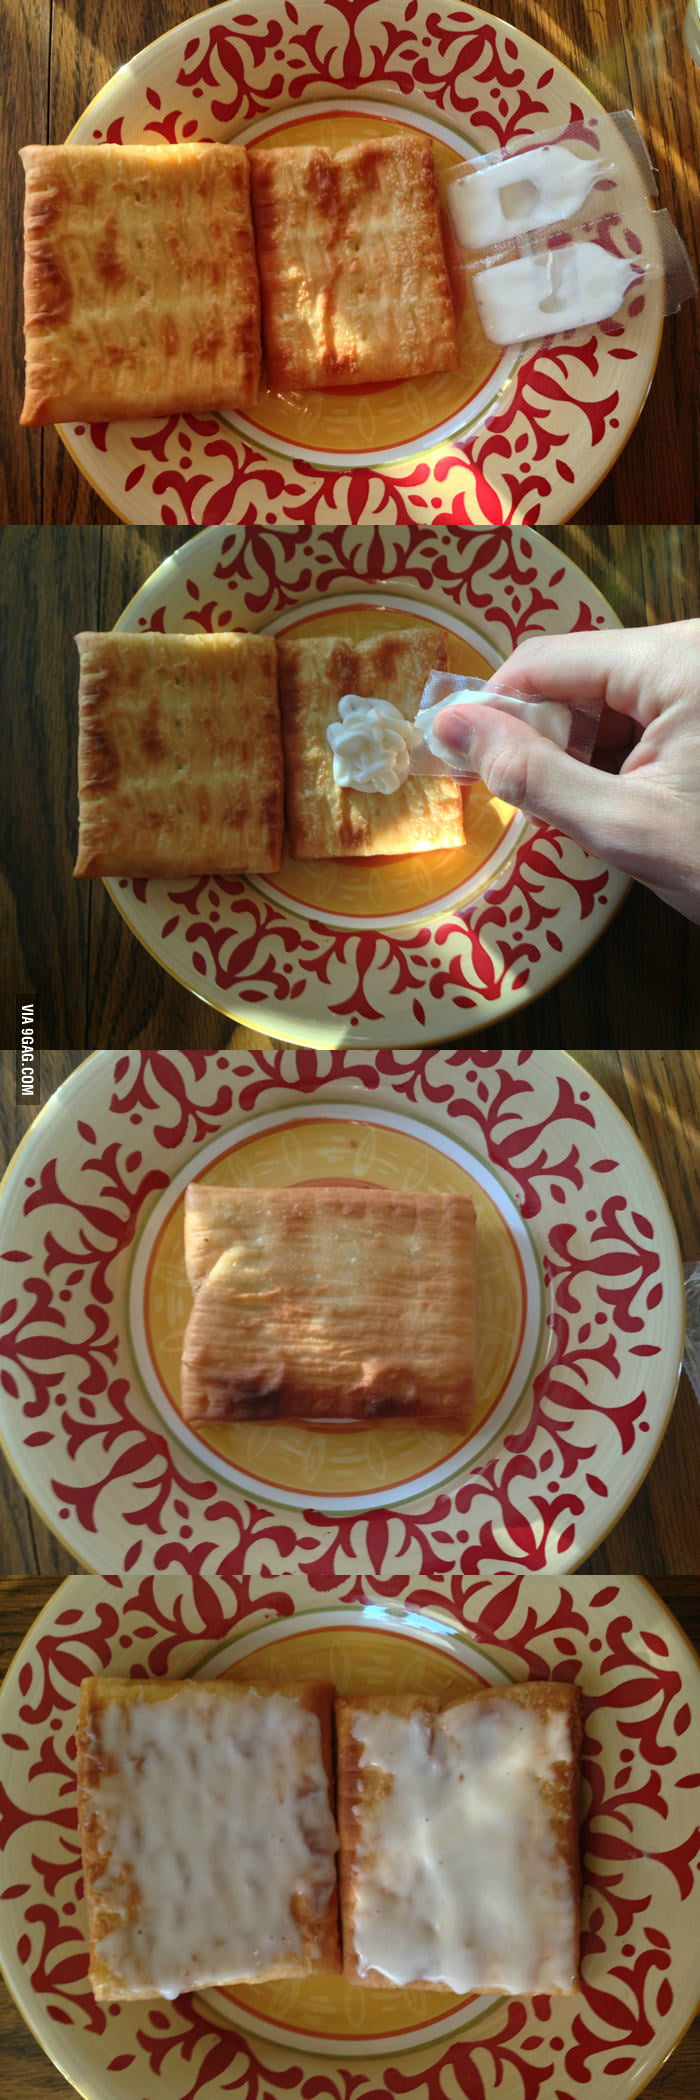 How to properly apply icing to your Toaster Strudels